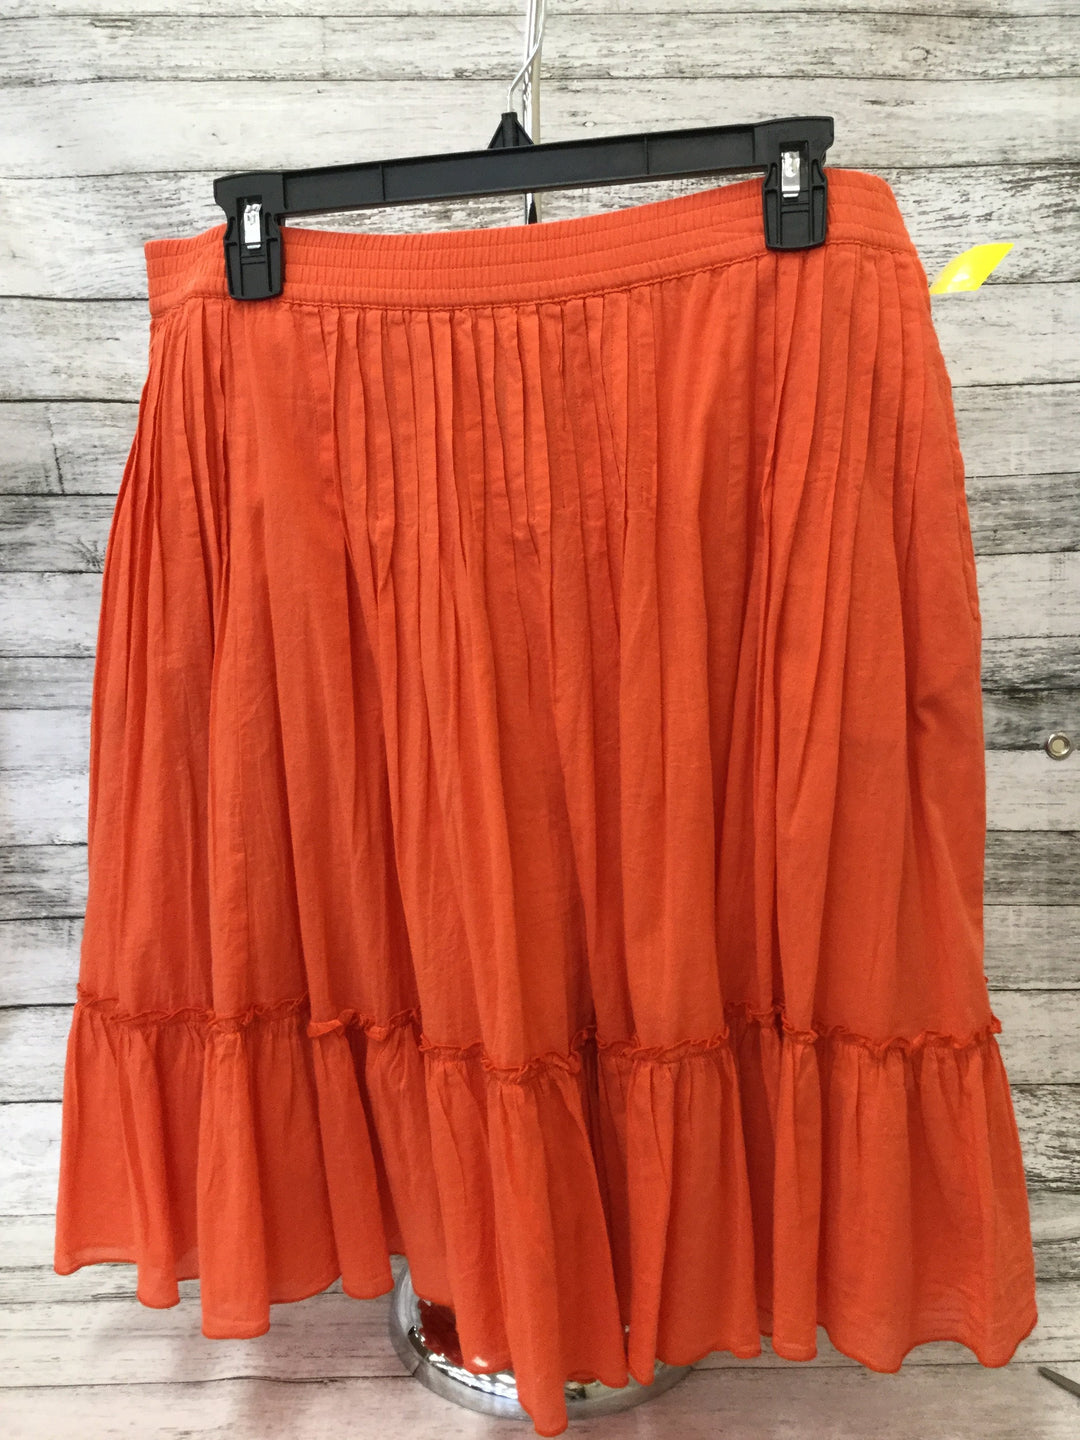 Primary Photo - brand: gap , style: skirt , color: orange , size: m , sku: 125-4893-1802